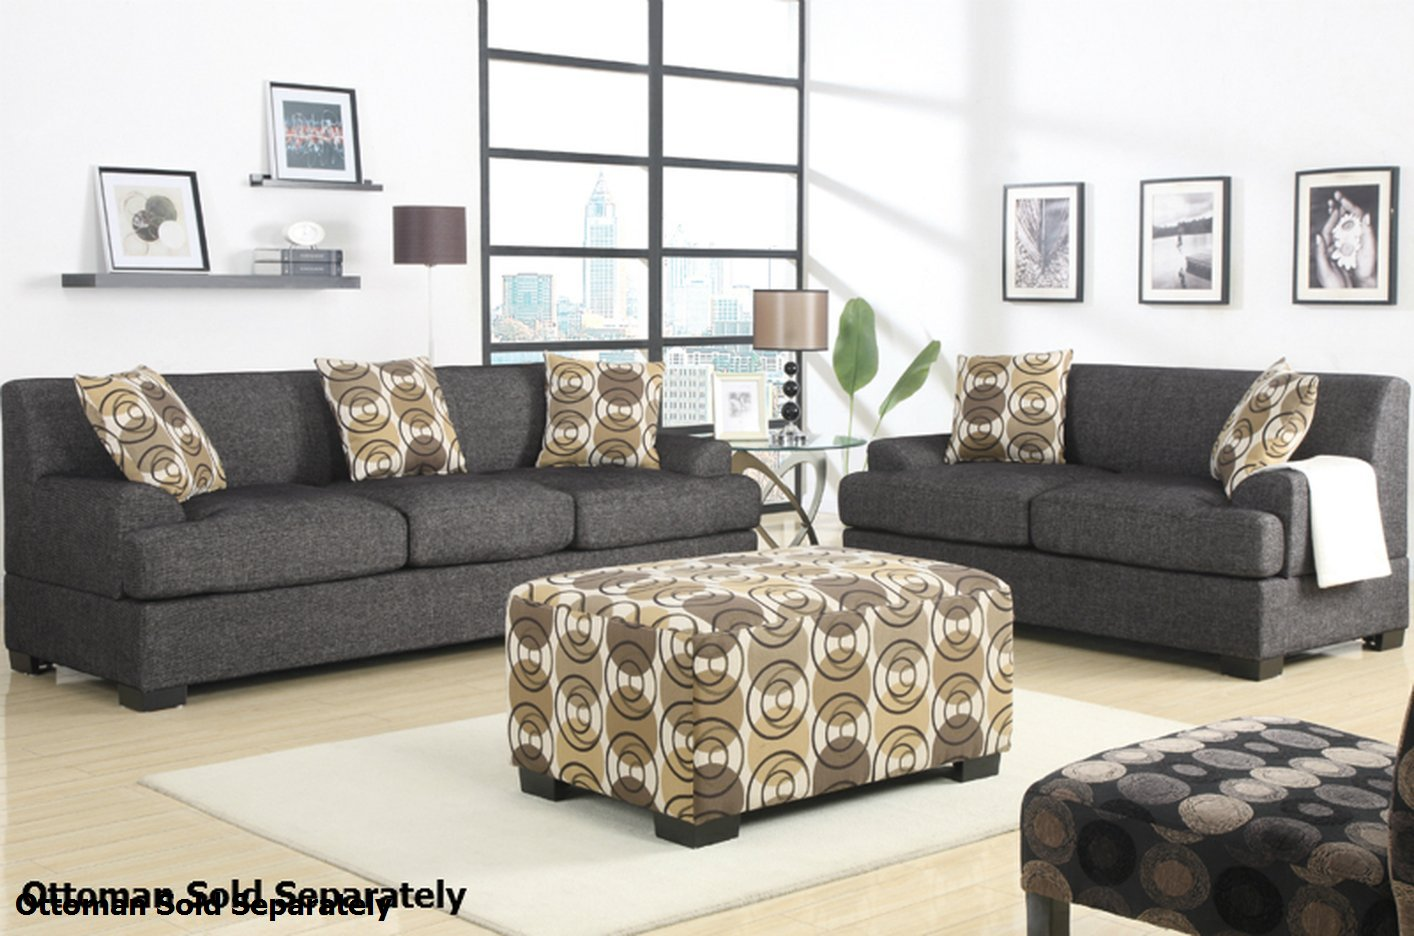 sofa loveseat and ottoman s batar